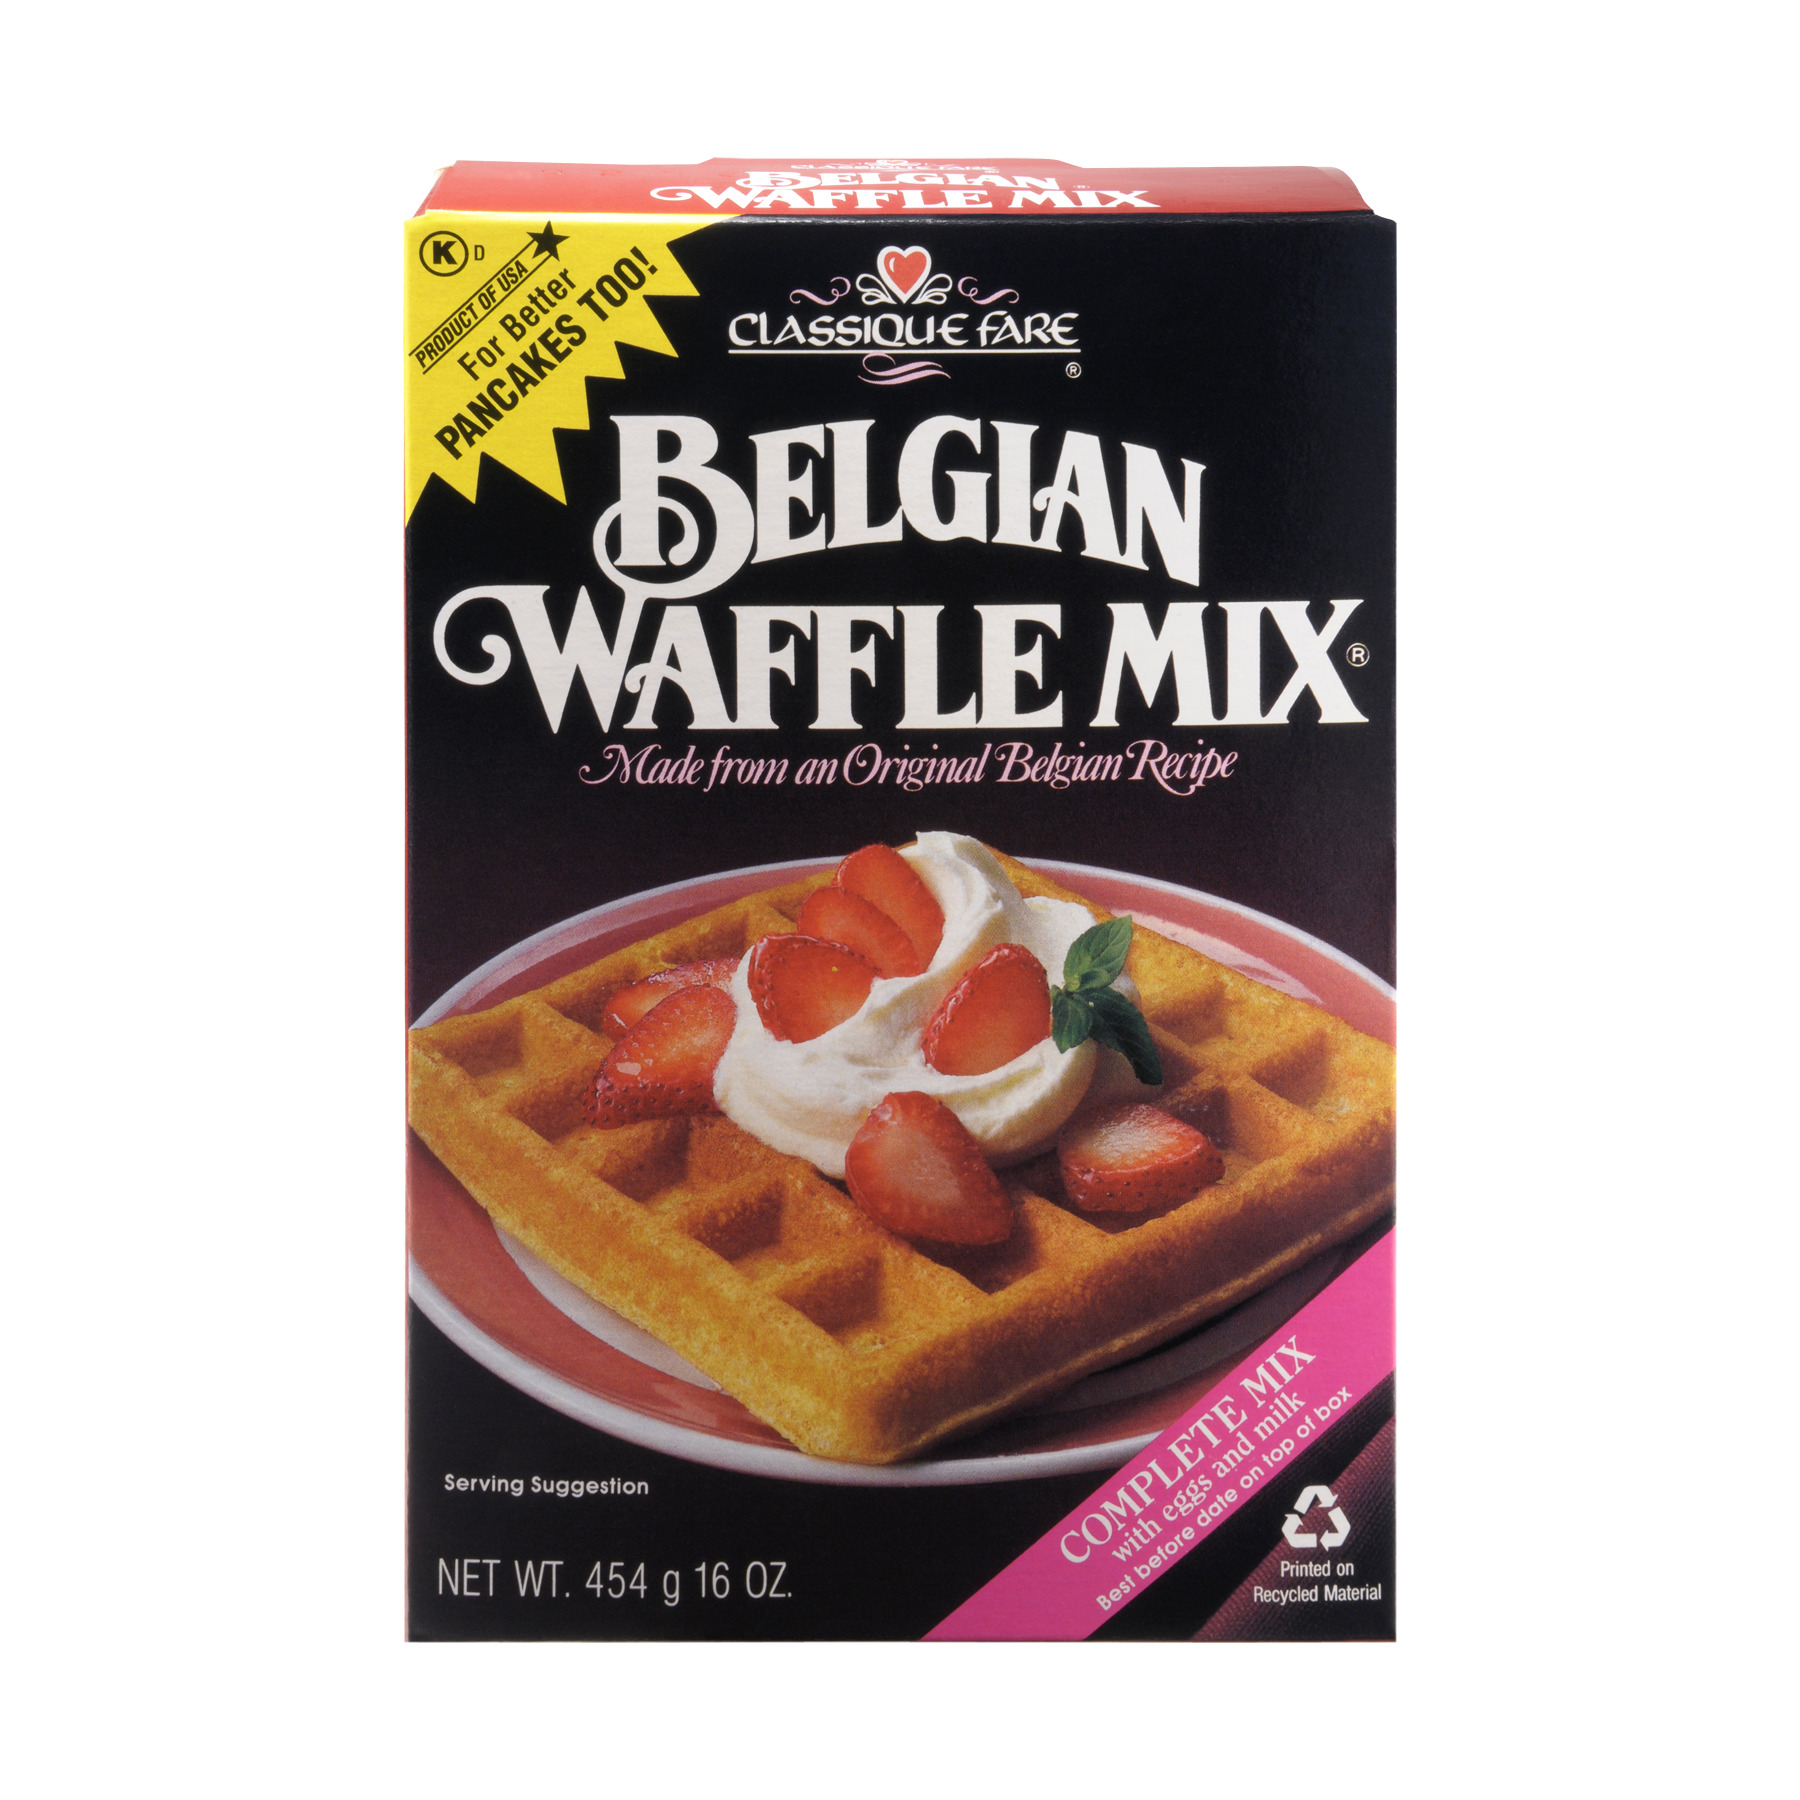 Classique Fare Belgian Waffle Mix, 16.0 OZ by Modern Products, Inc.